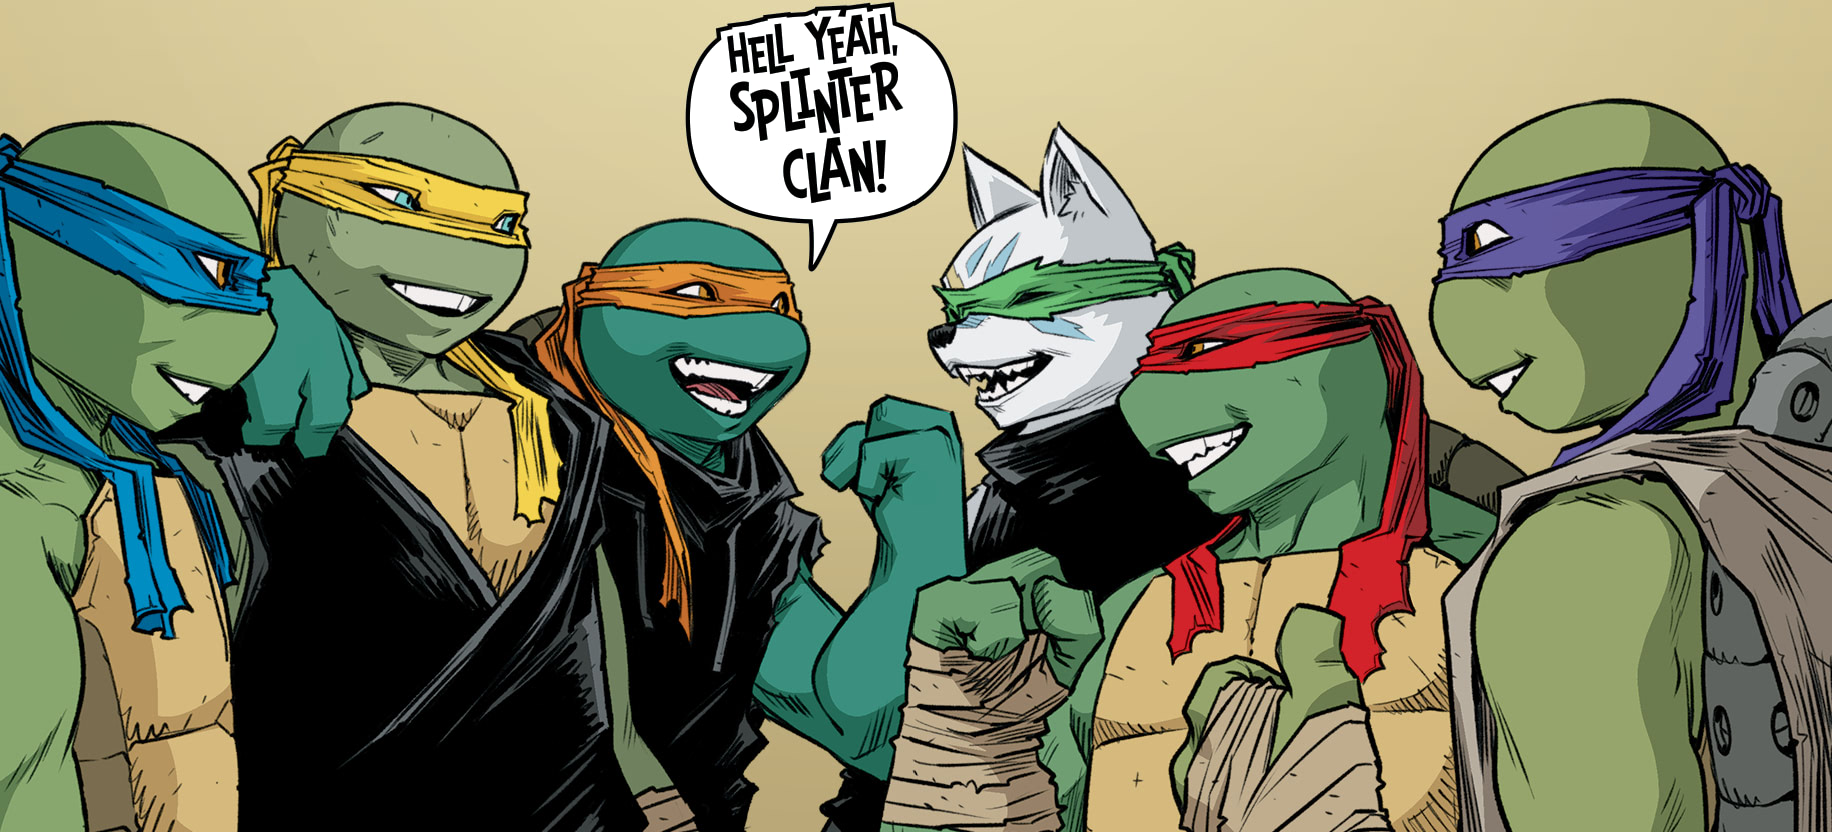 Splinter Clan